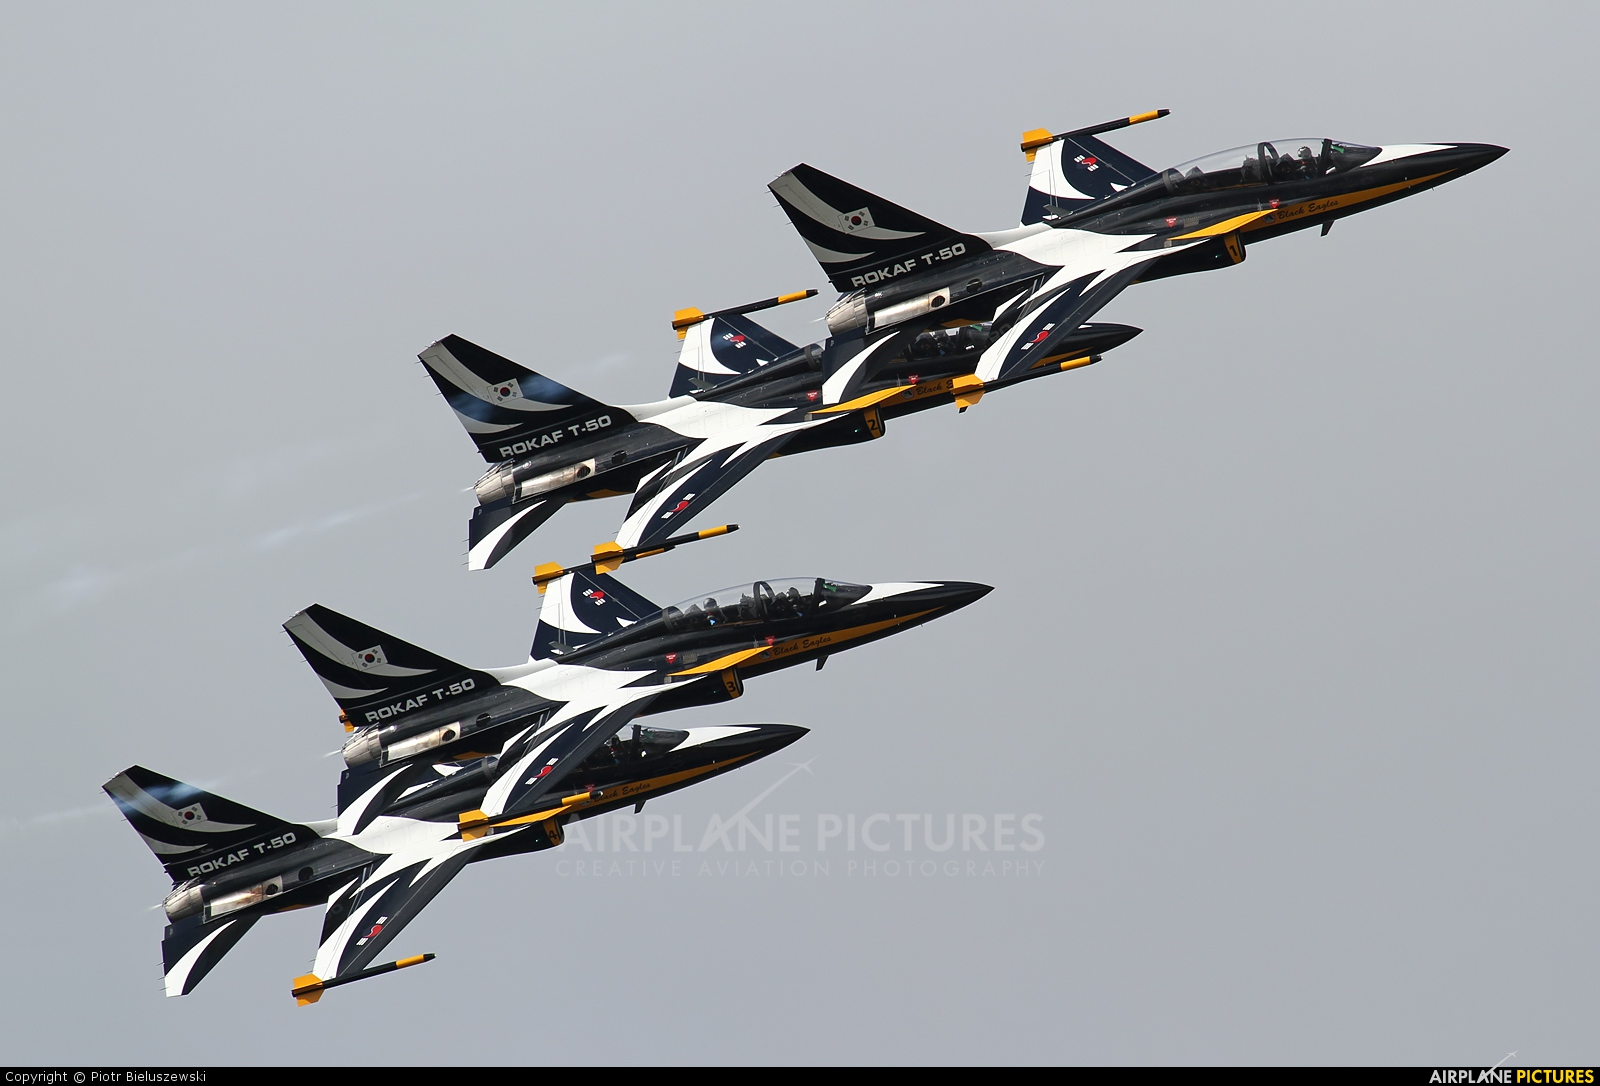 Korea (South) - Air Force: Black Eagles Korean Aerospace T-50 Golden